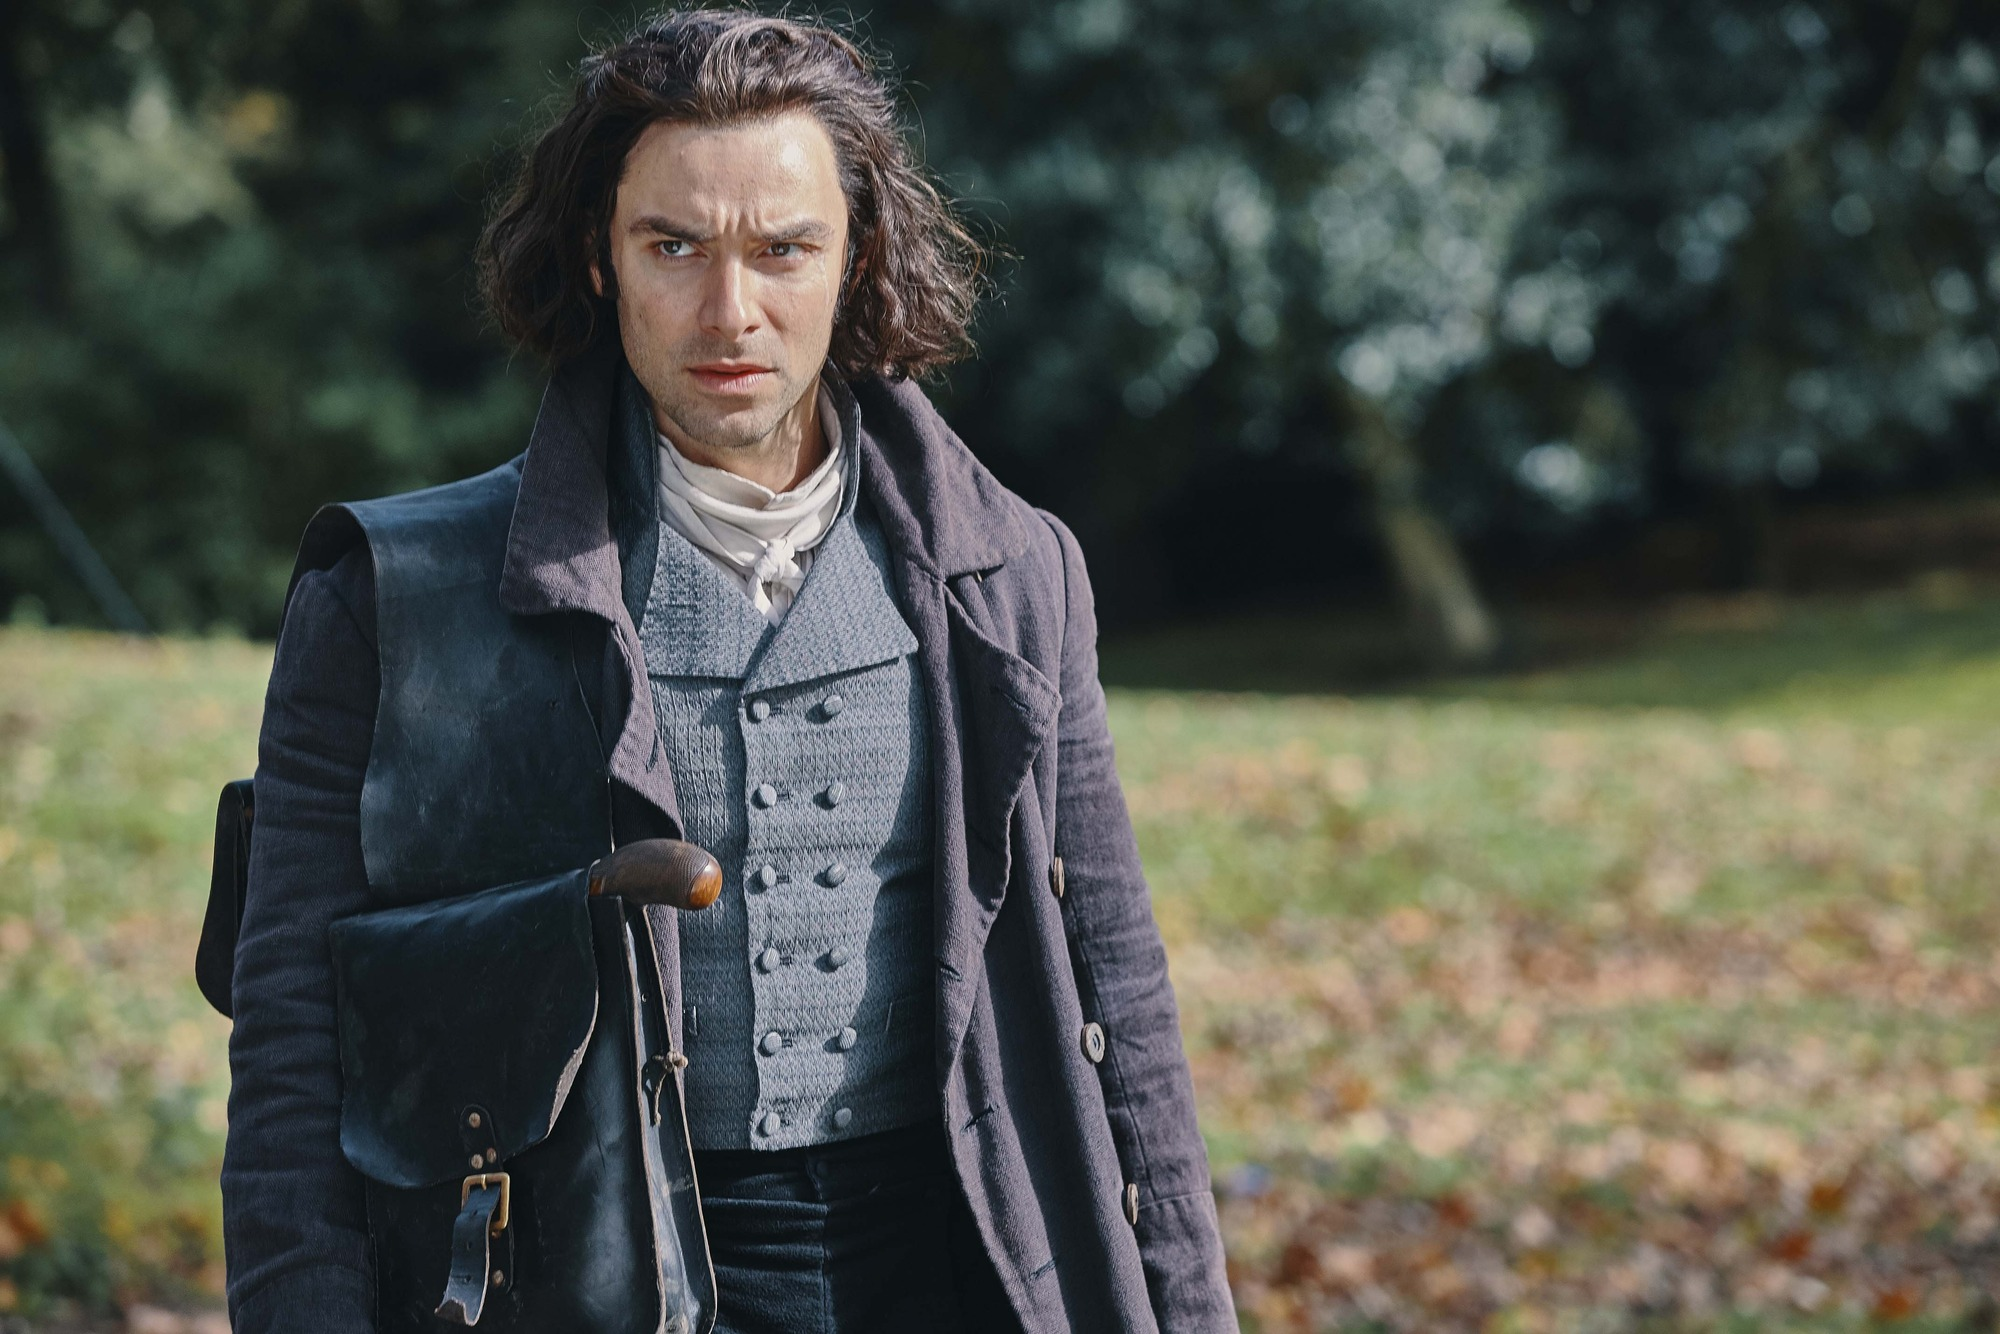 Will there be a series five of Poldark and will it be the last season?